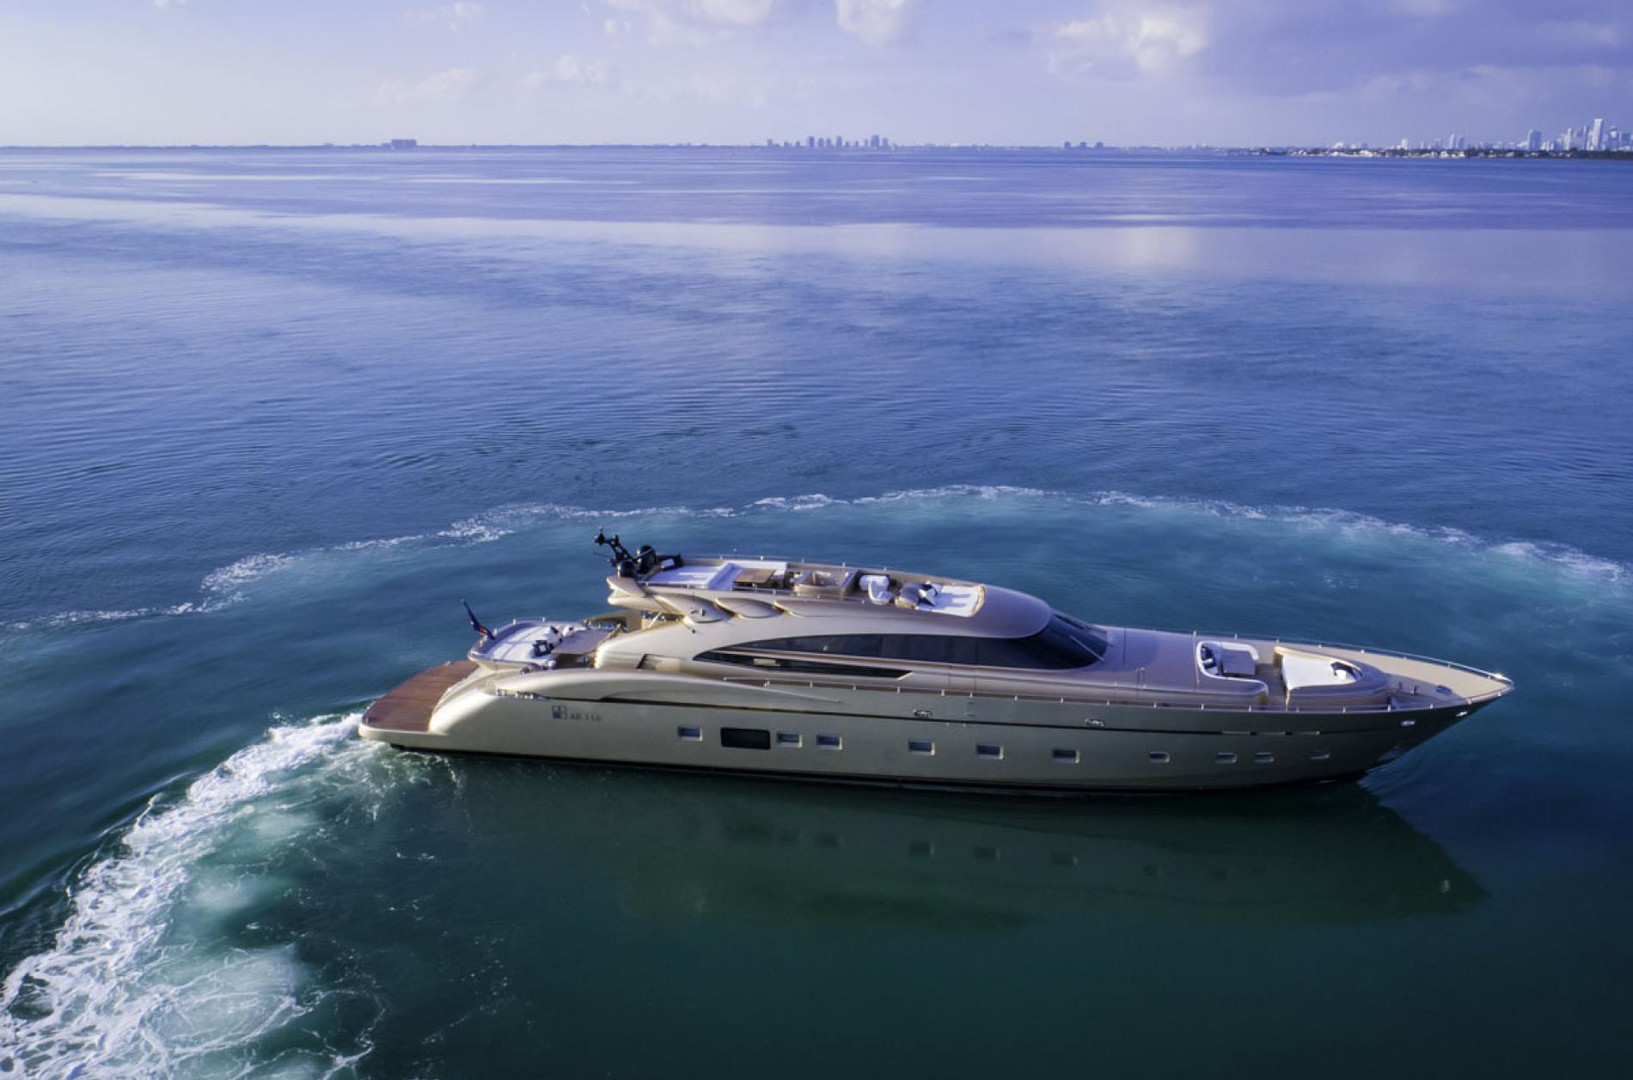 Yacht FIVE WAVES - Bahamas super yacht charter